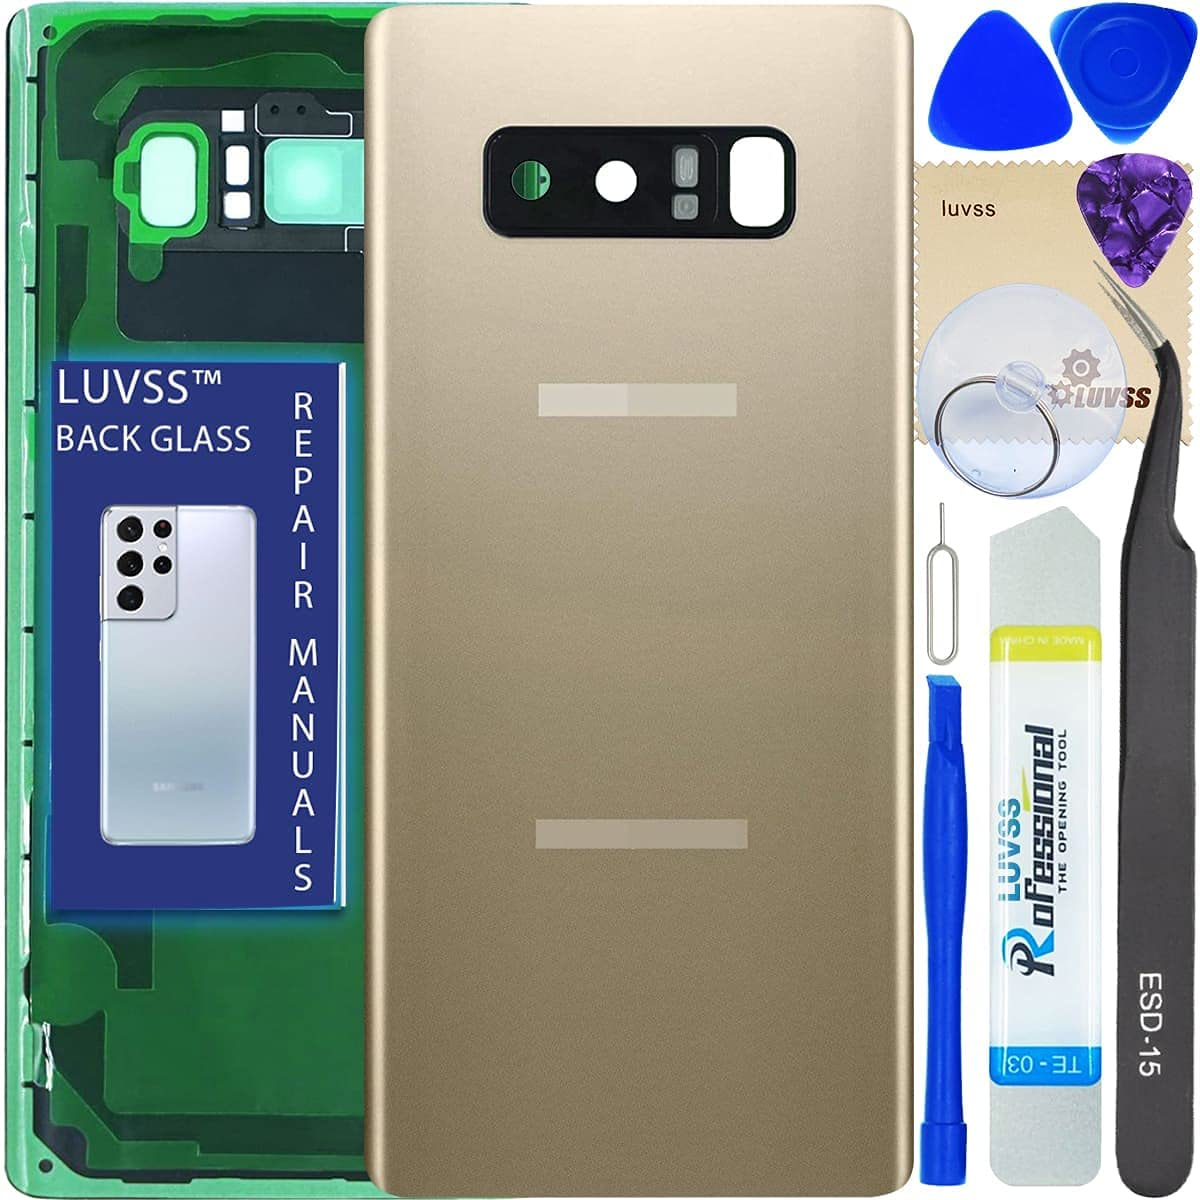 LUVSS Glass for Samsung Galaxy Note 8 SM-N950 Backing Glass Replacement Panel Cover Case Housing + Camera Lens with Repair Manual DIY Tools Kit (Maple Gold)